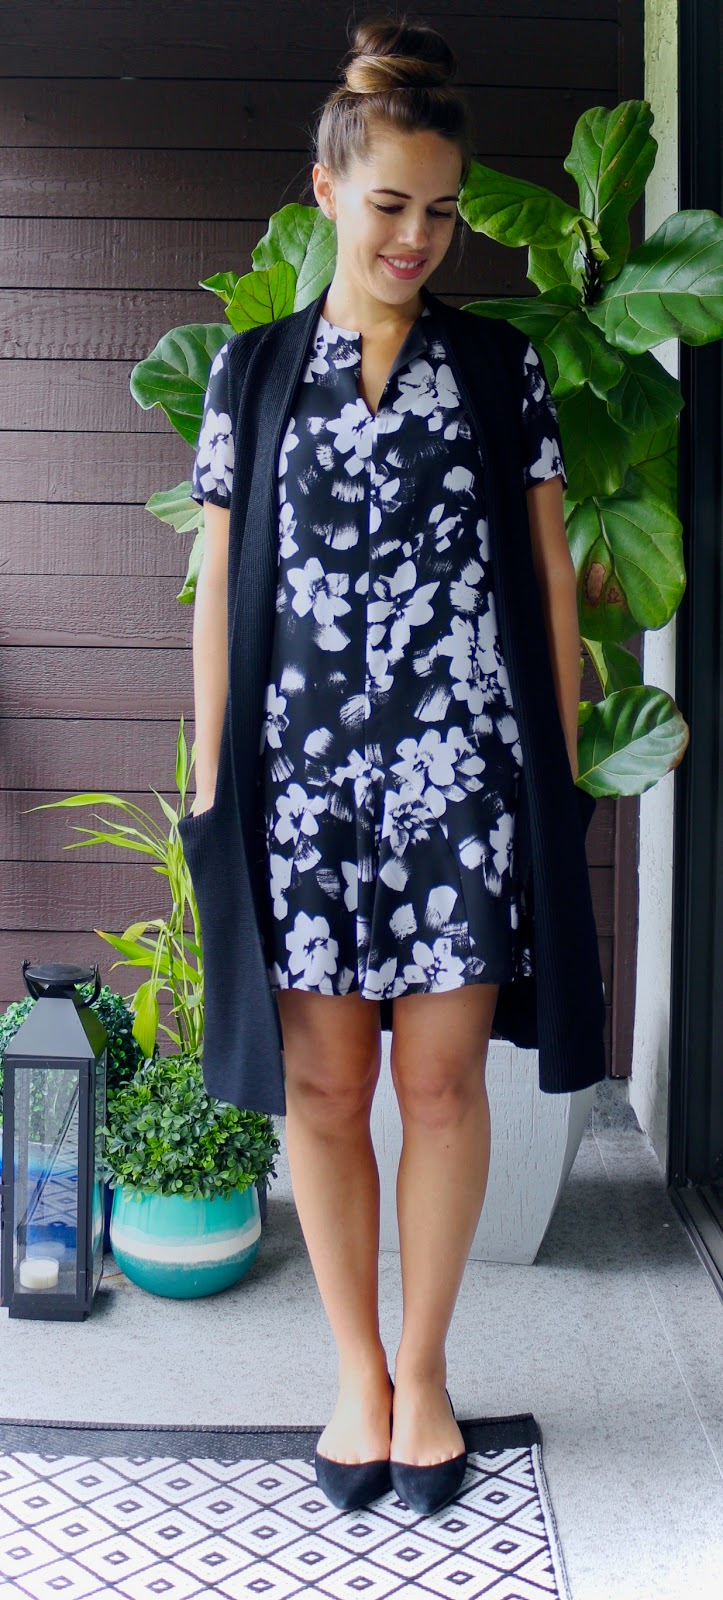 Jules in Flats - Black and White Floral Dress with Sweater Vest